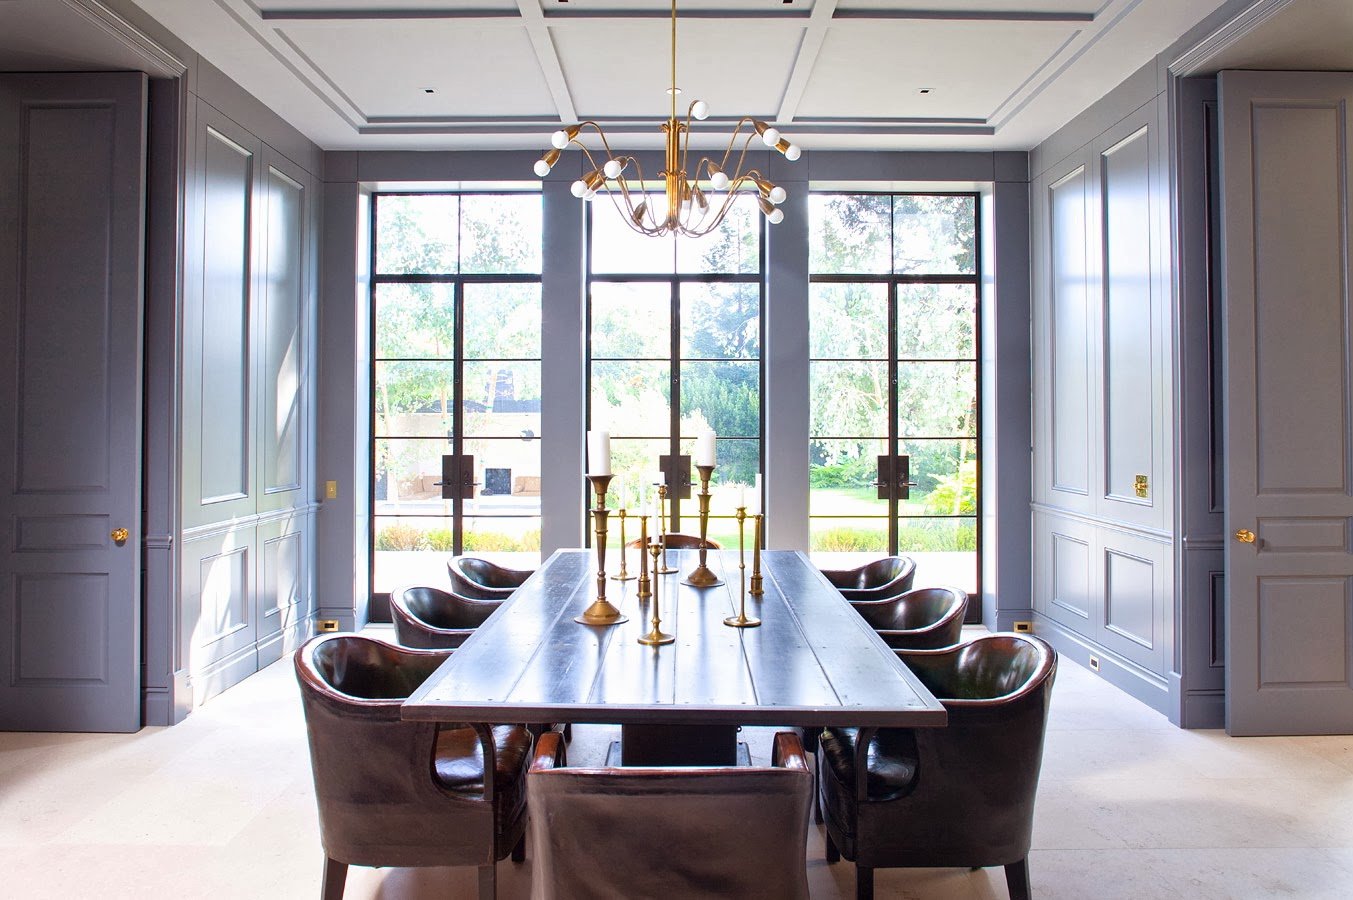 Dining Room Design with Blue Color Model Home Interiors